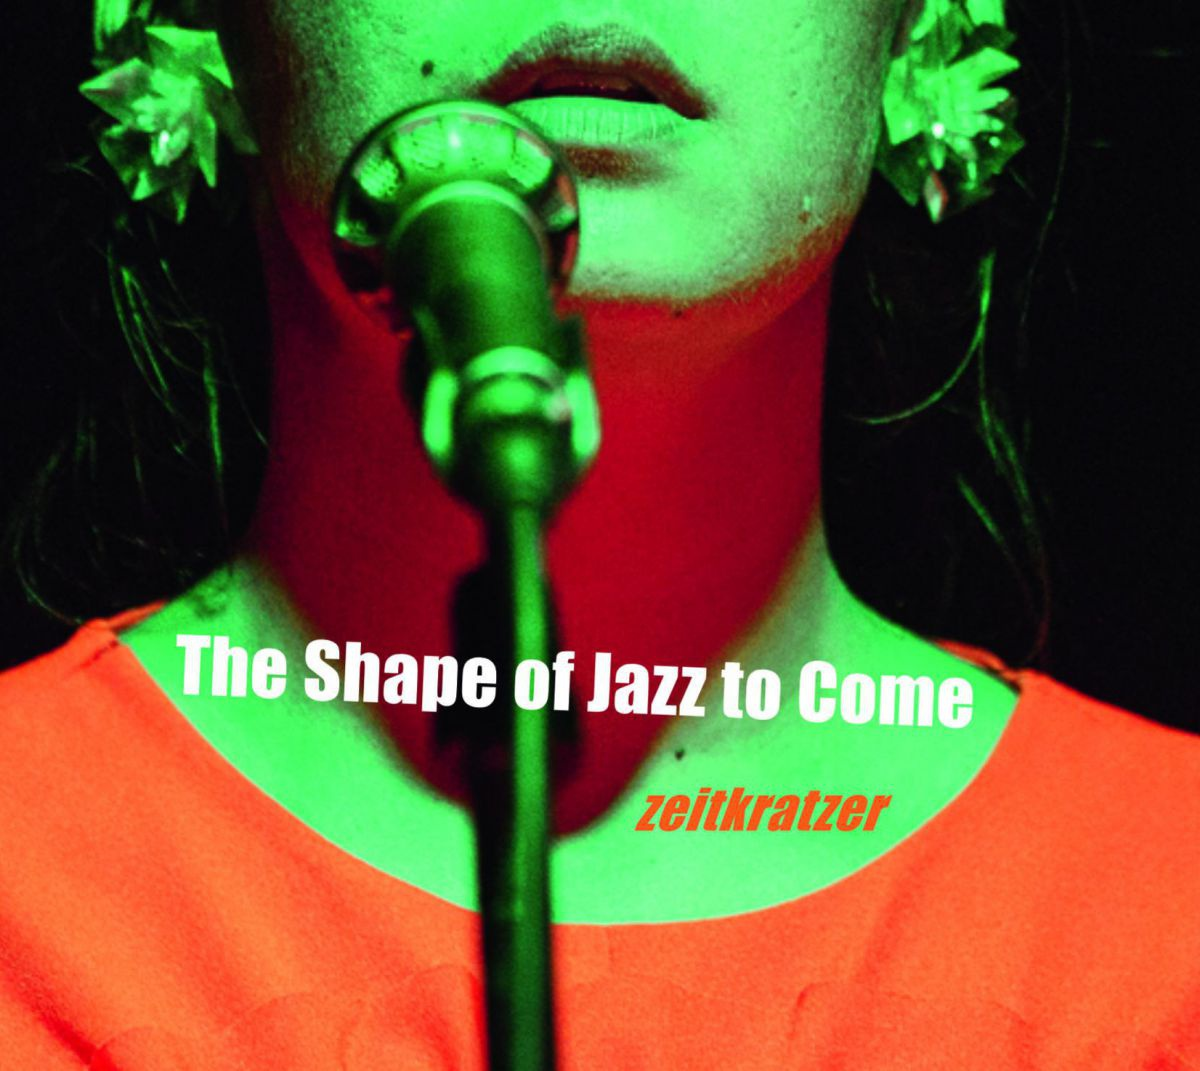 zkr0025_the-shape-of-jazz-to-come-cover-hires